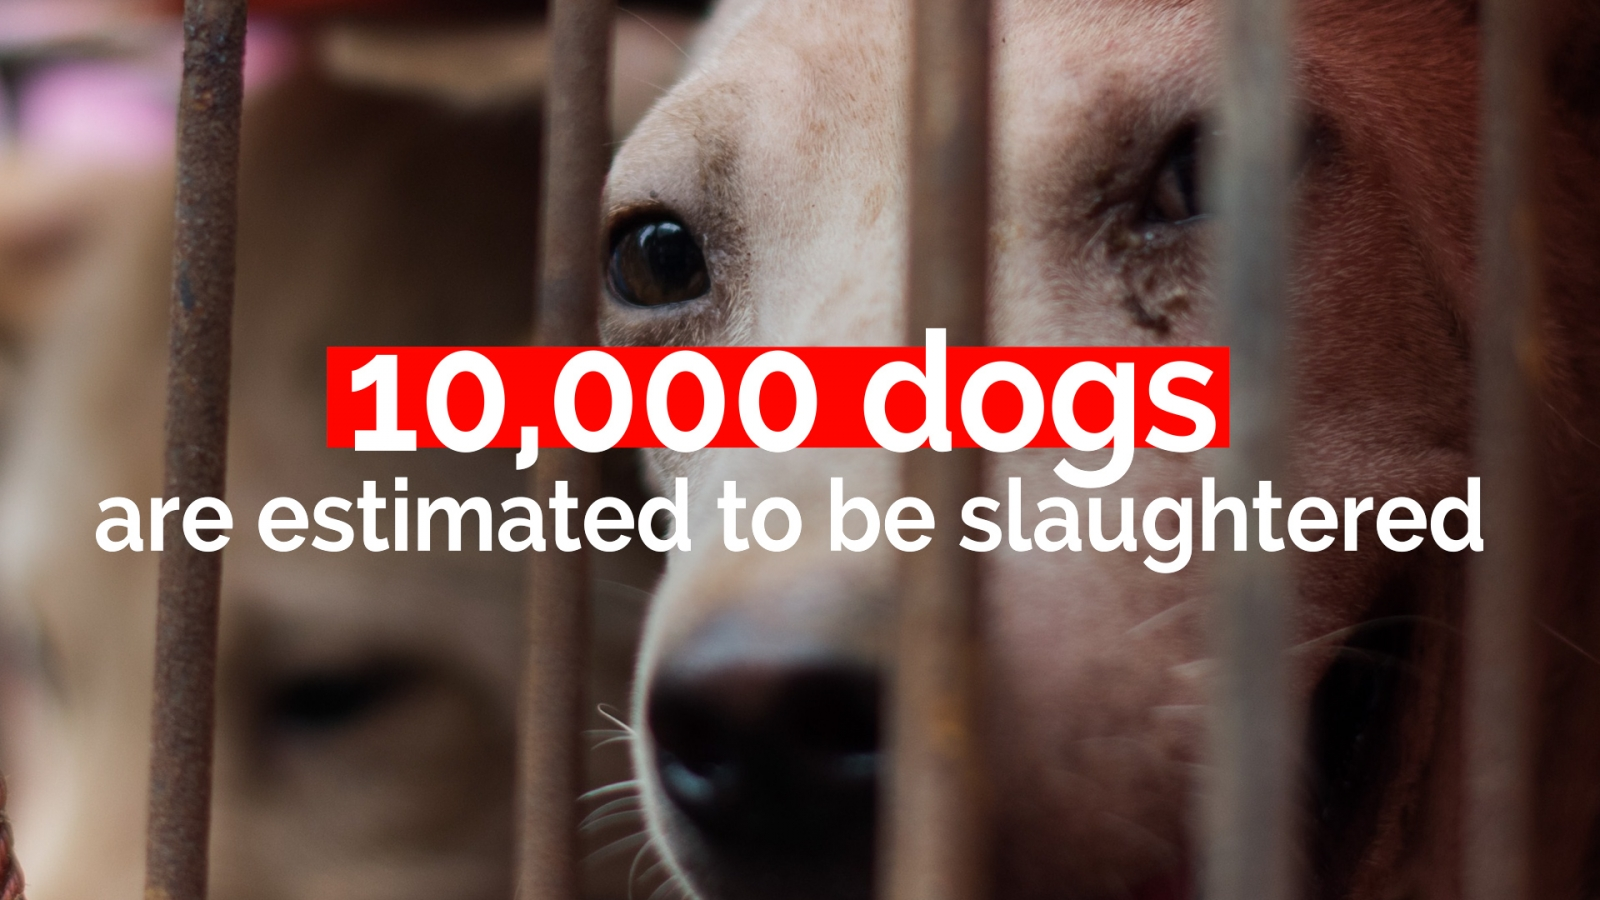 Eating dogs for health? The Yulin Dog Meat Festival